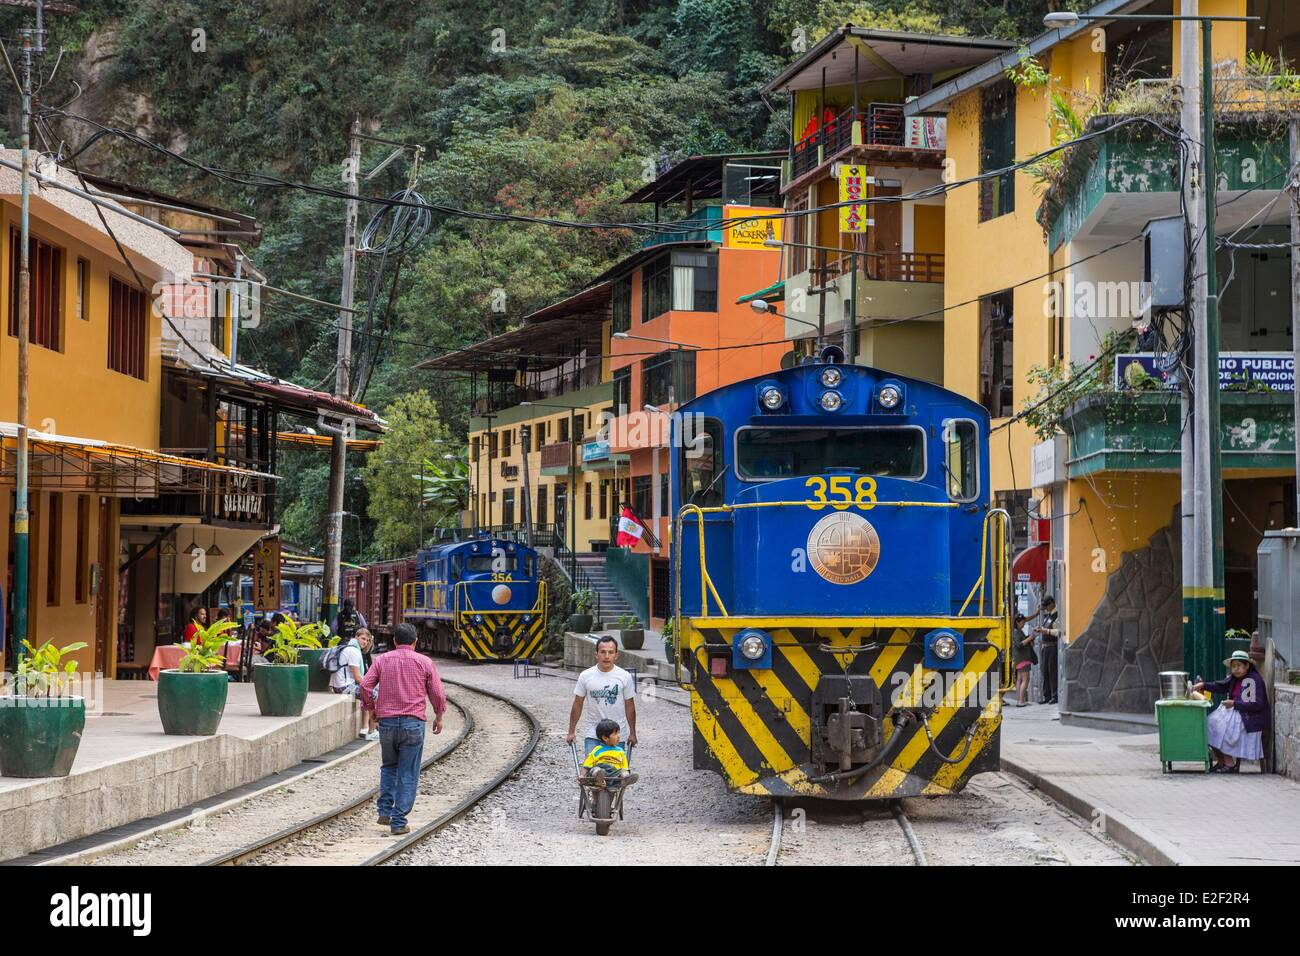 Peru, Cuzco Province, the Sacred Valley of the Incas, Aguas Calientes village at the foot of Machu Picchu - Stock Image